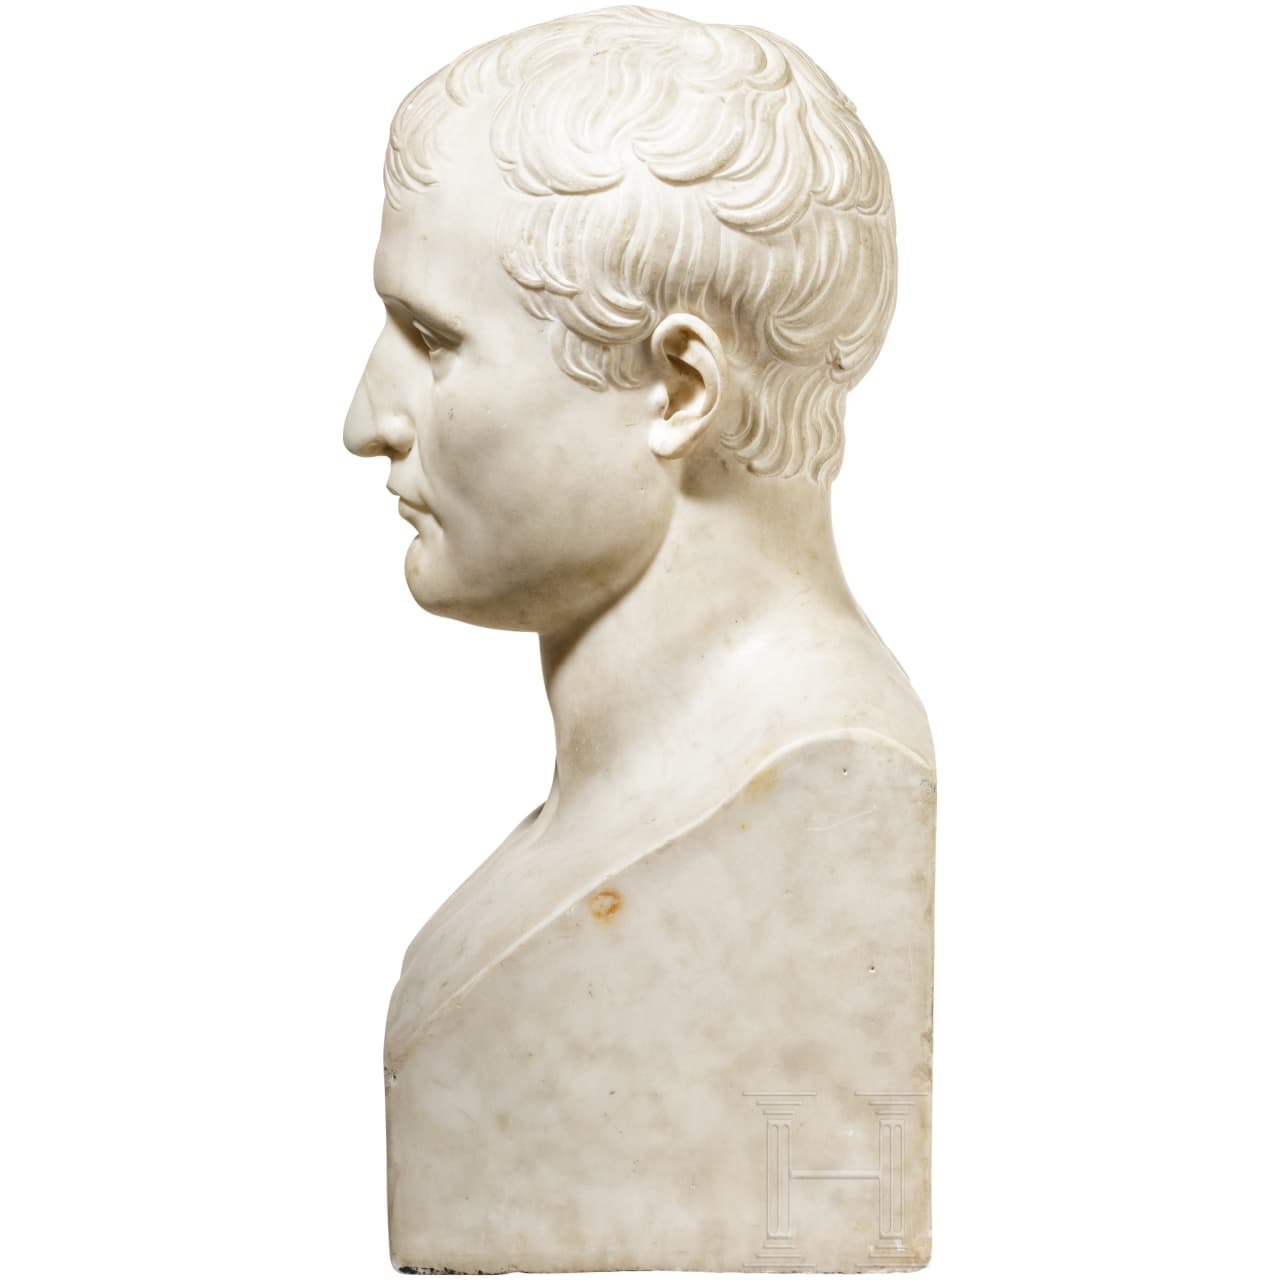 An imposing French bust of Napoléon Bonaparte, early 19th century